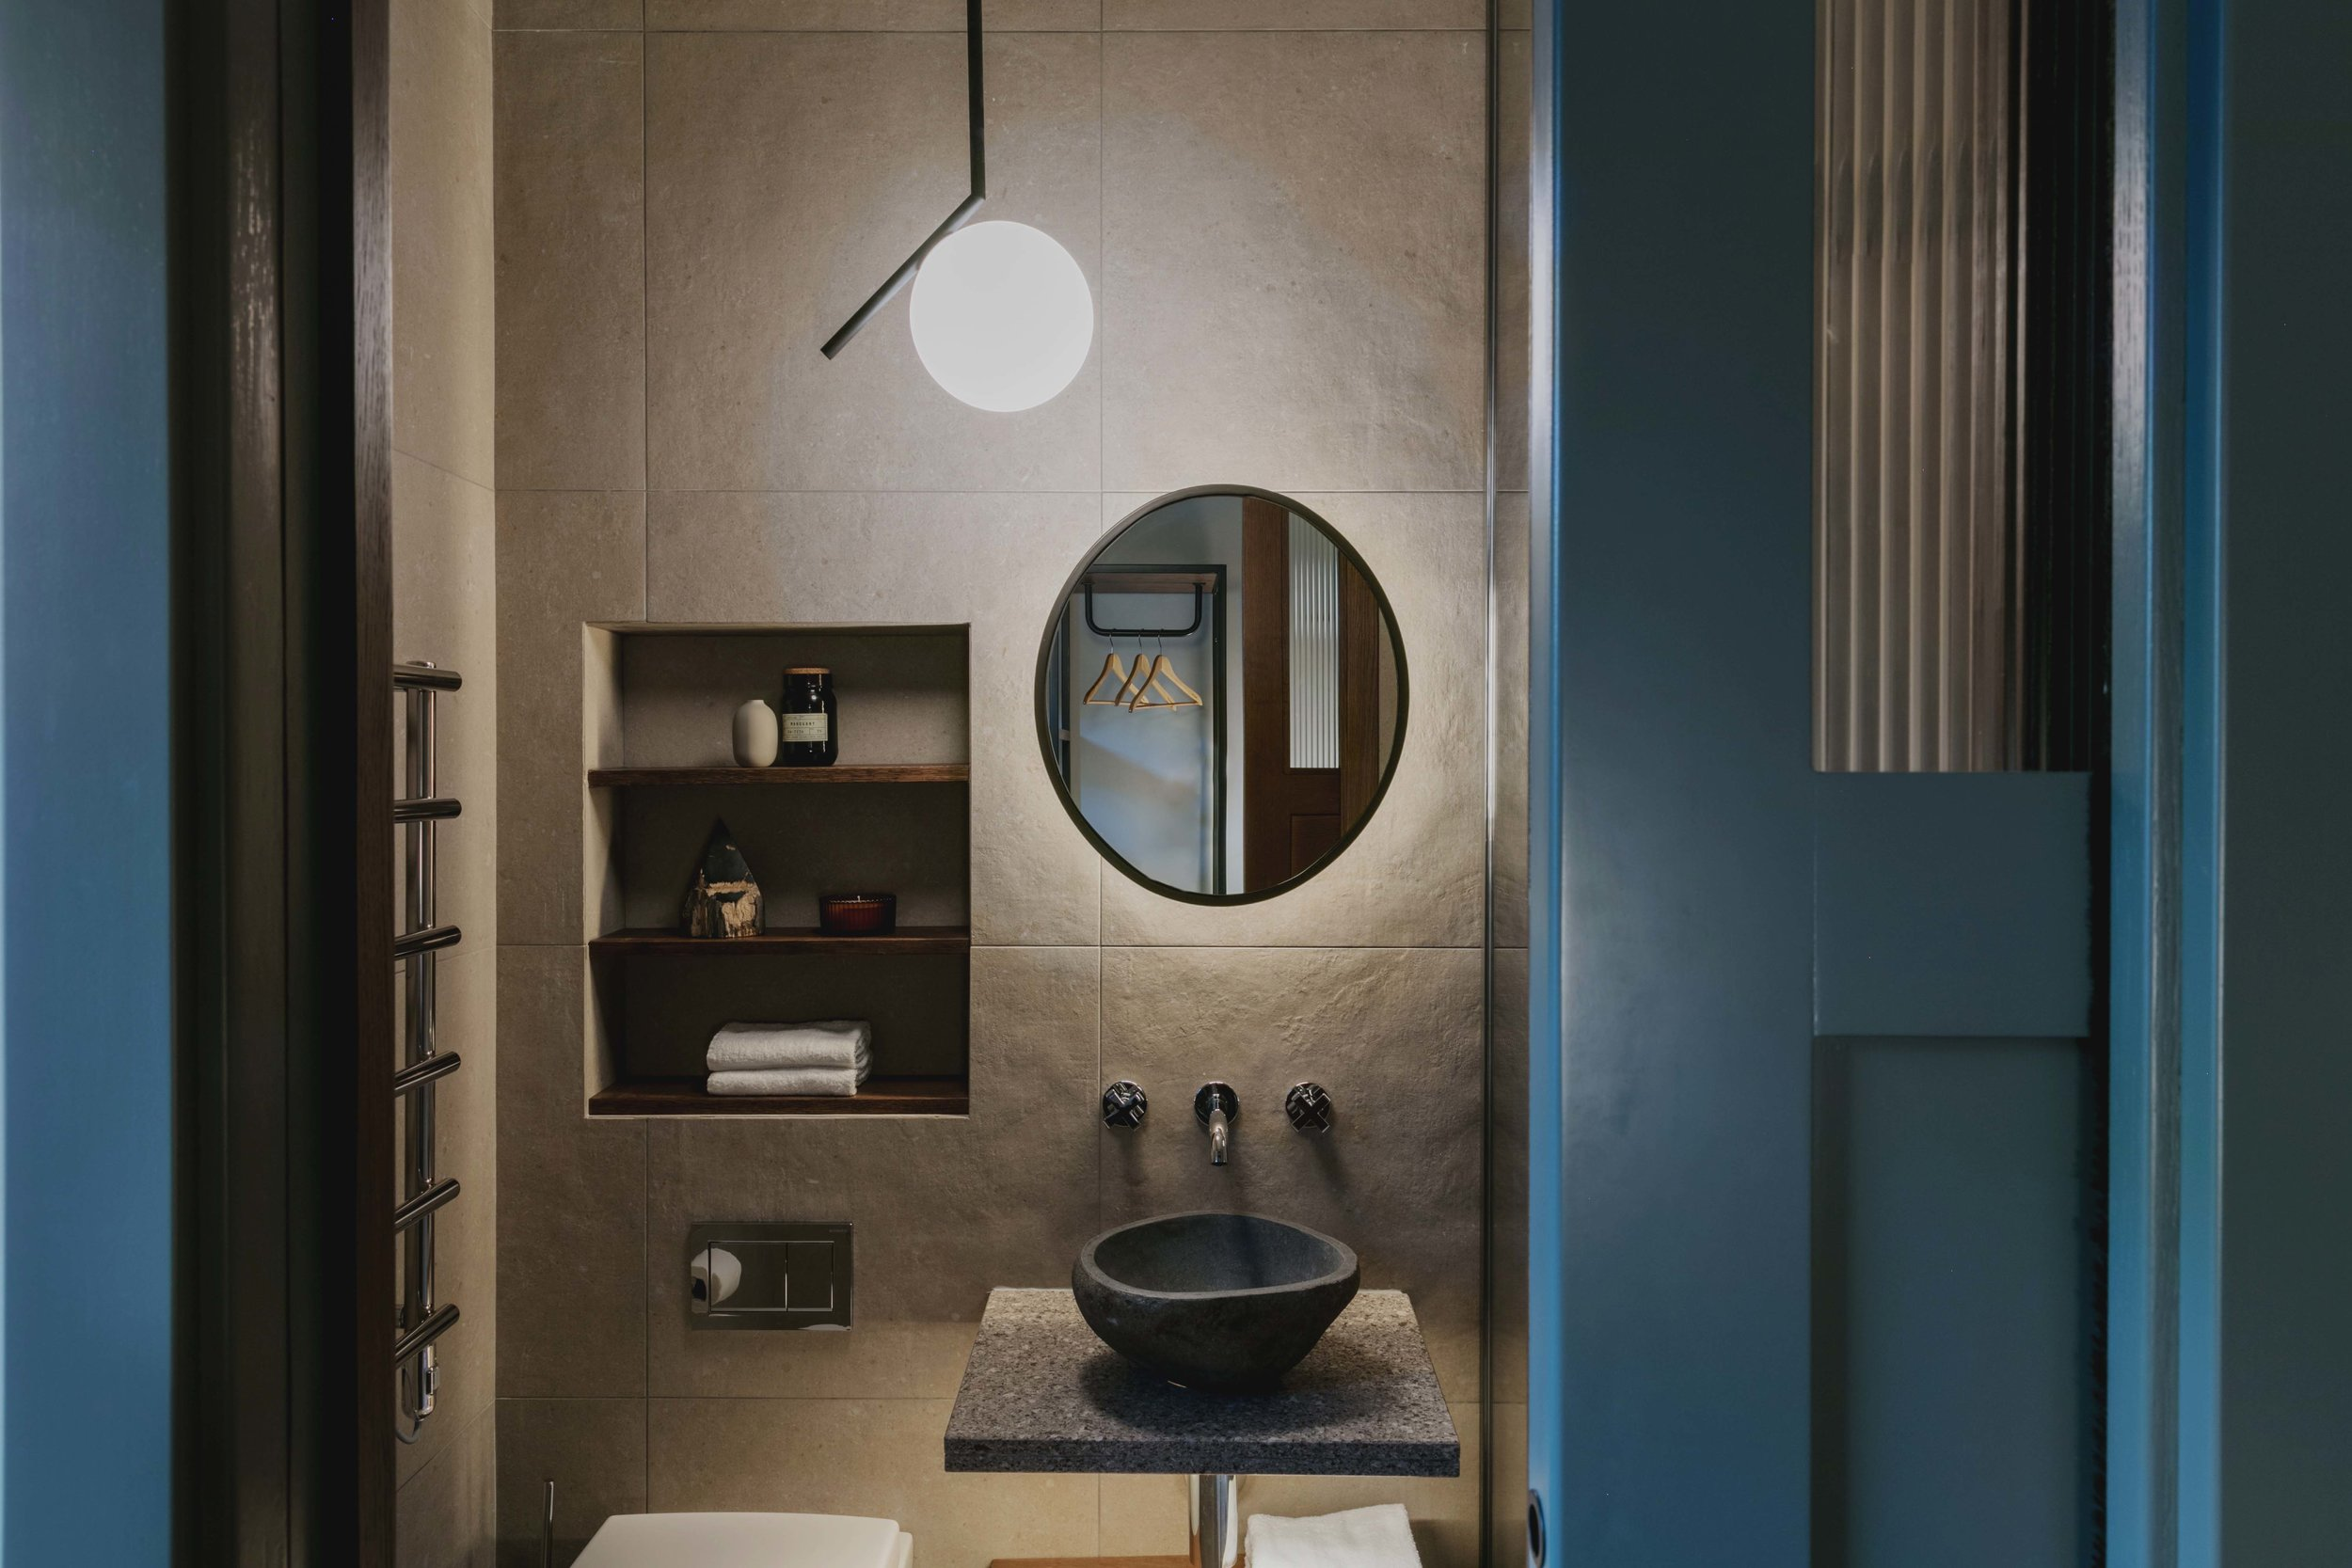 boxx-creative-bathroom-backlit-mirror.jpg